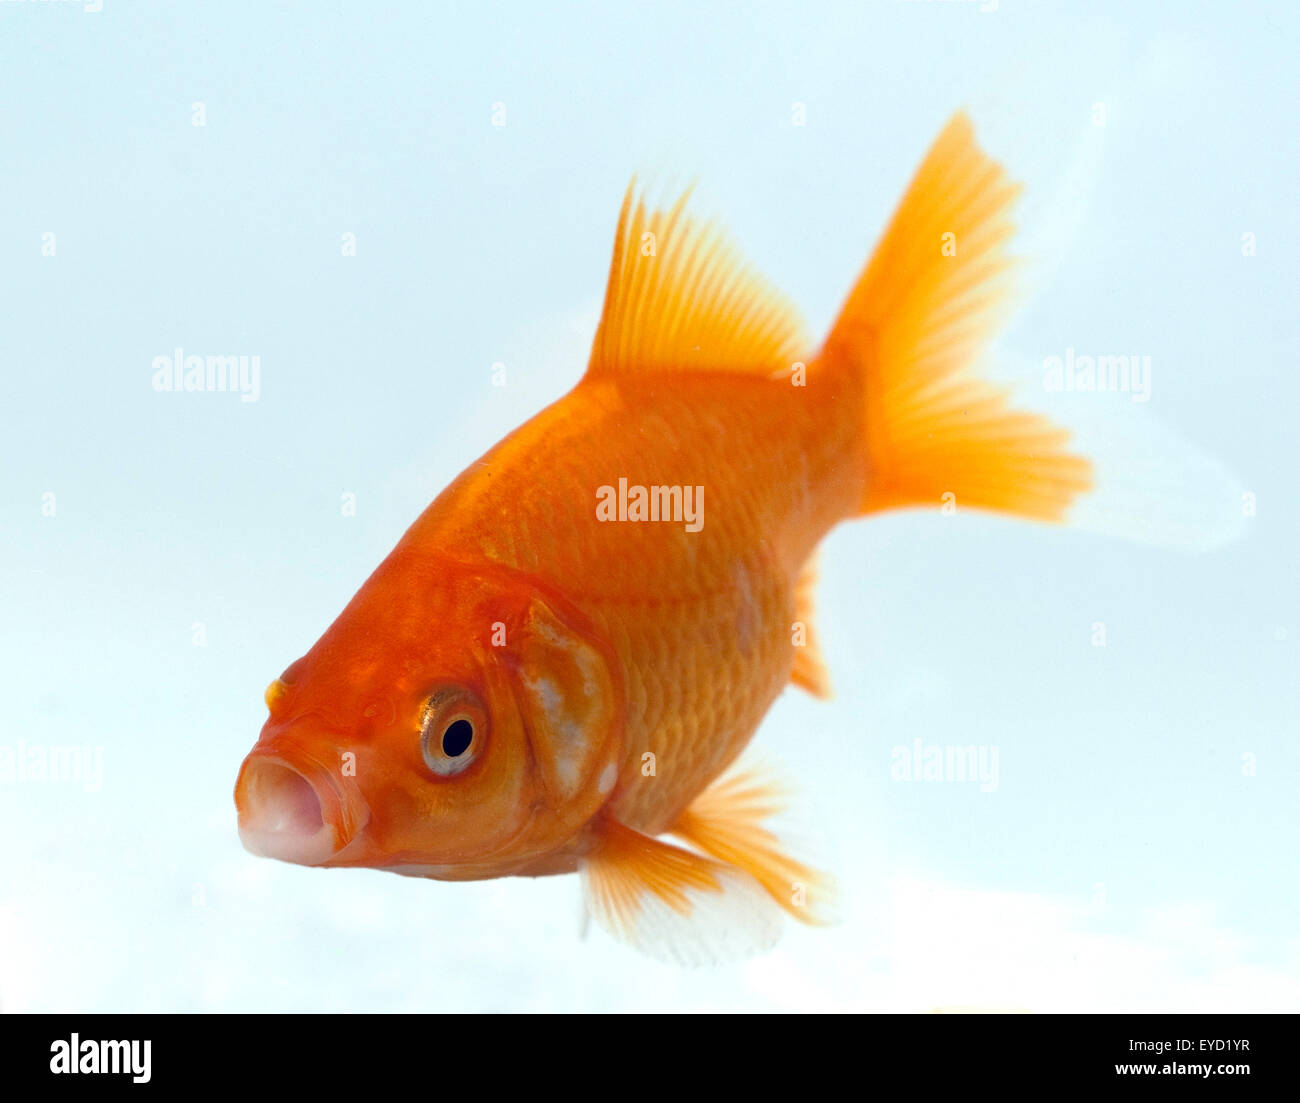 Goldfisch, Carassius gibelio, Suesswasserfisch Stock Photo